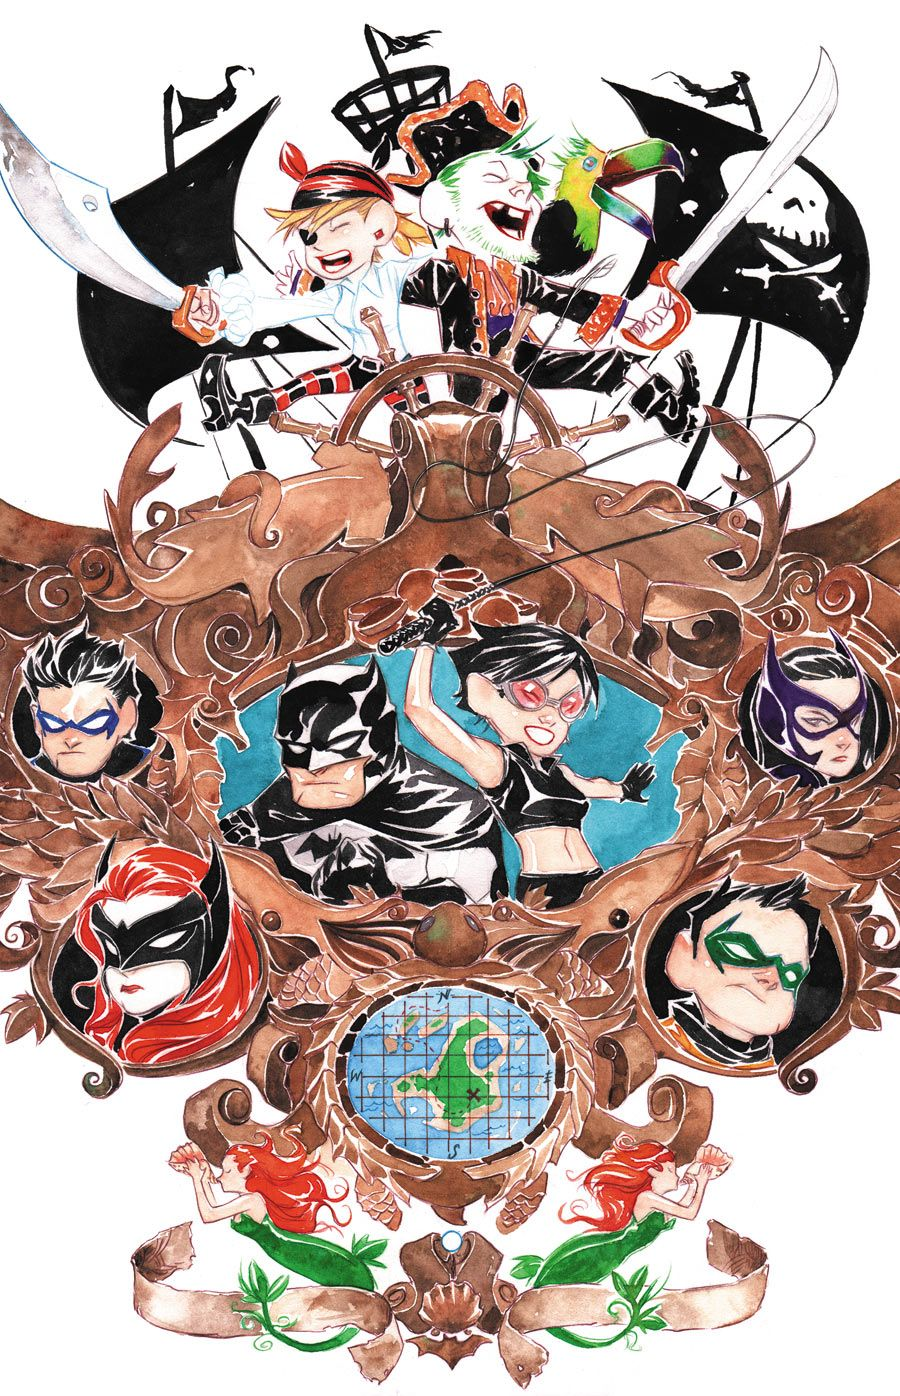 Lil' Gotham by Dustin Nguyen